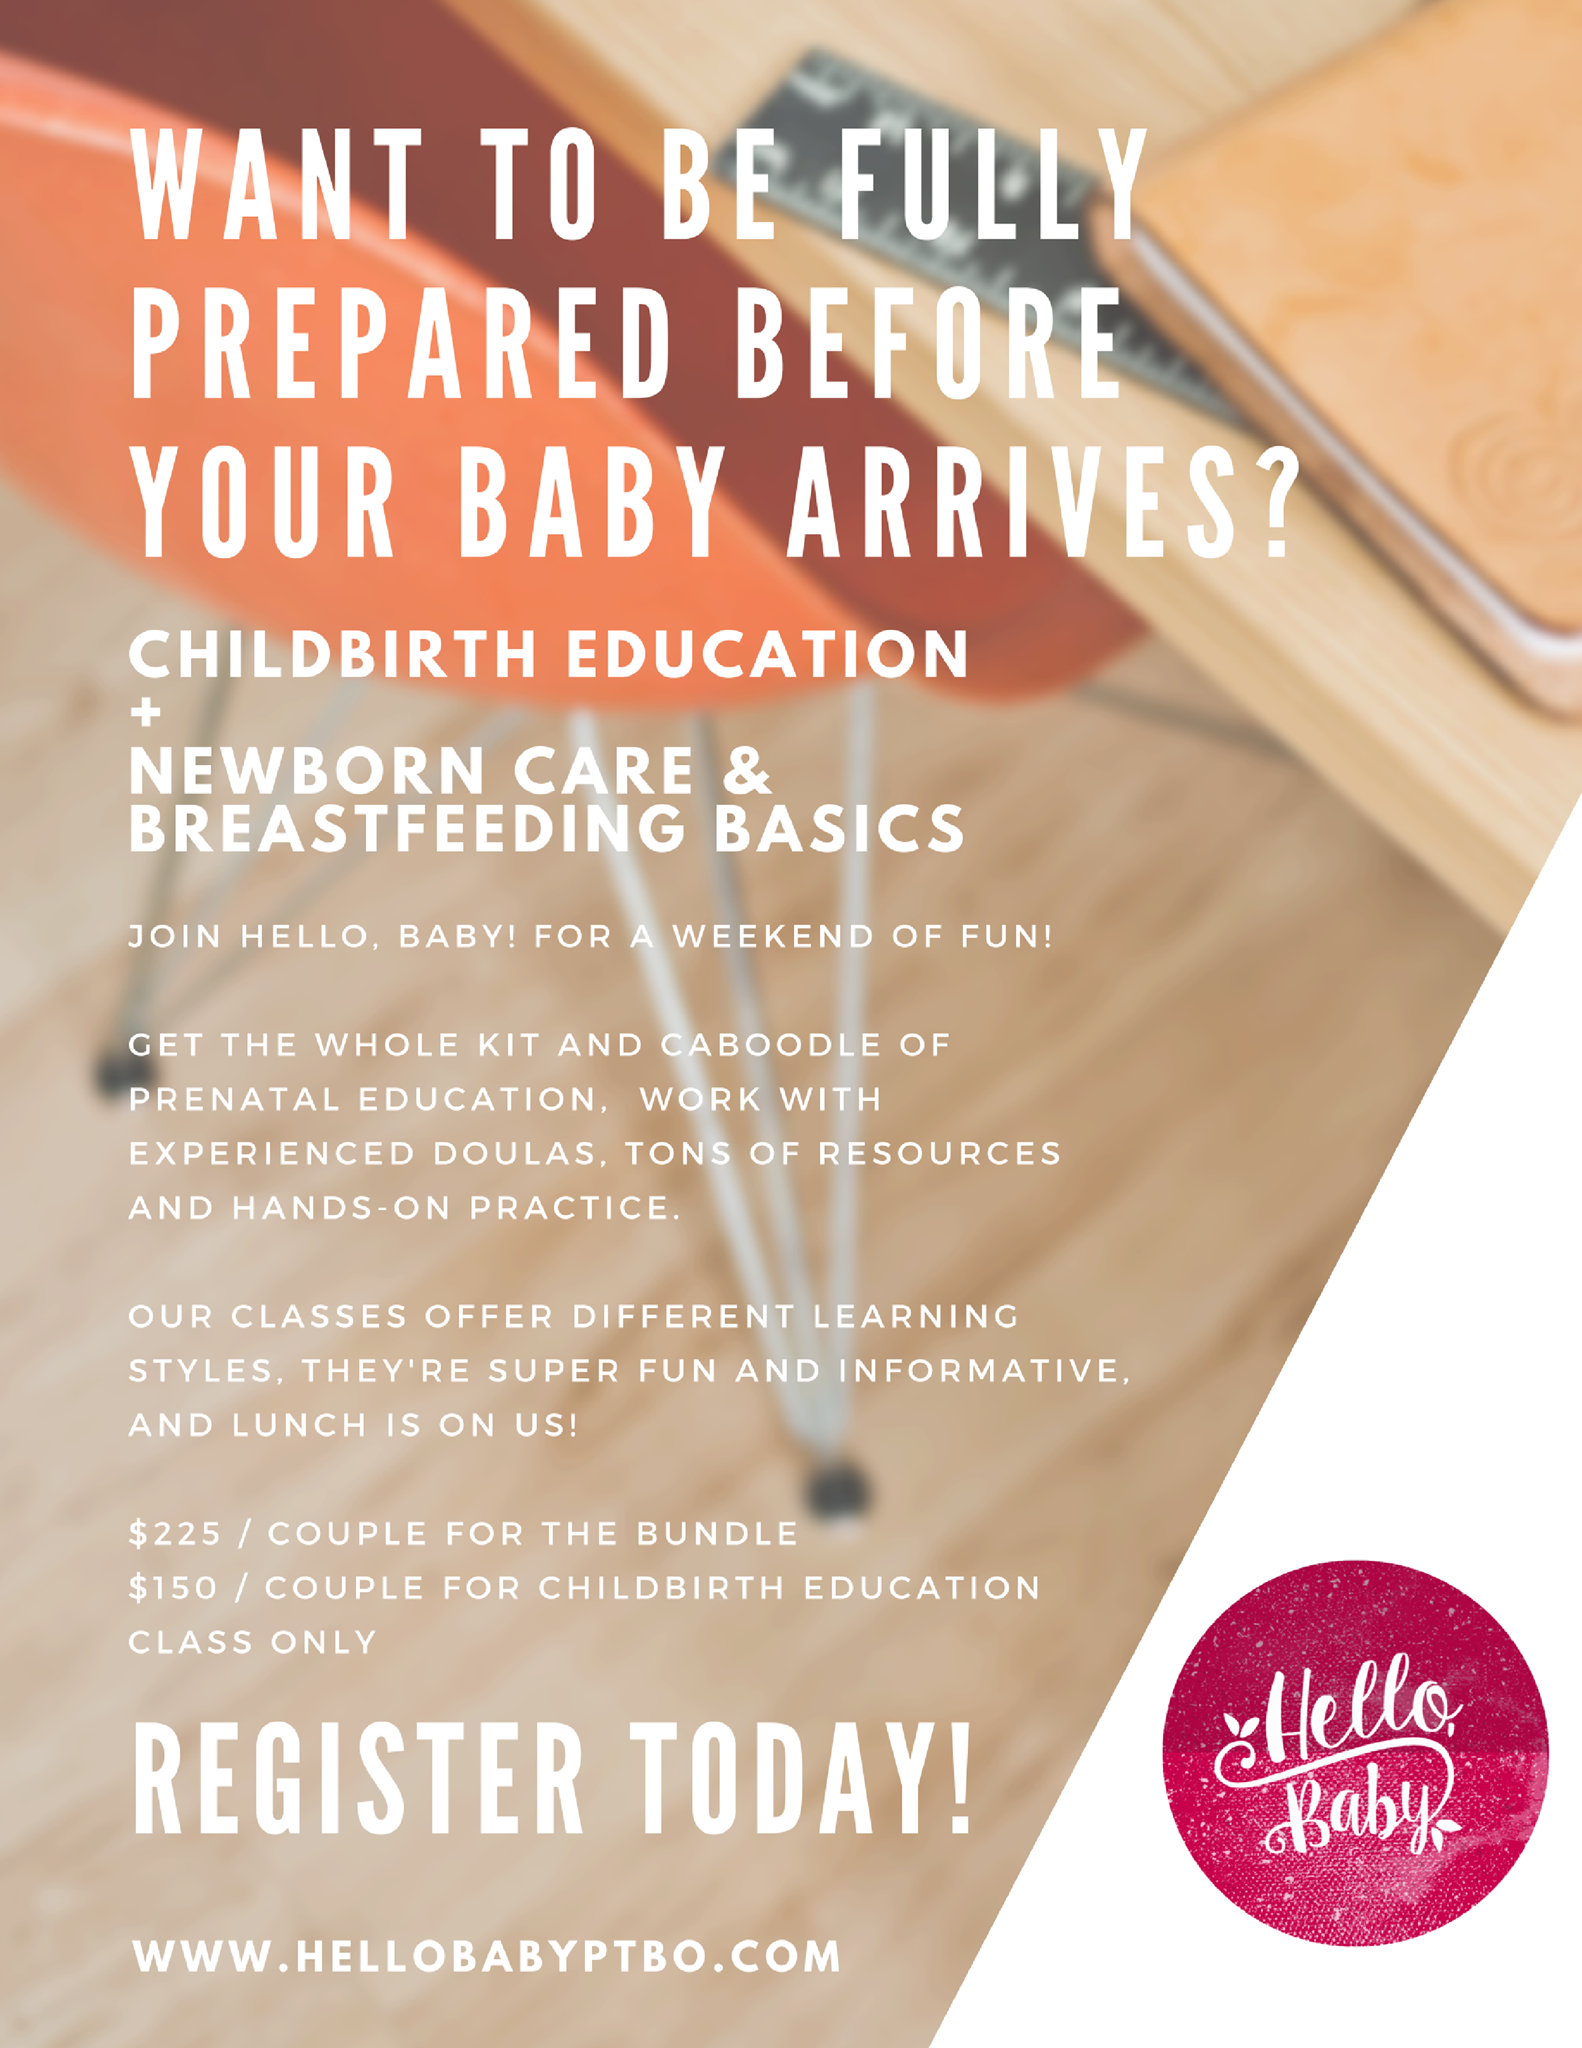 Register for your Childbirth Education Class alone or in a bundle with our Newborn Care & Breastfeeding Basics class!  Get prepared from bump to baby.